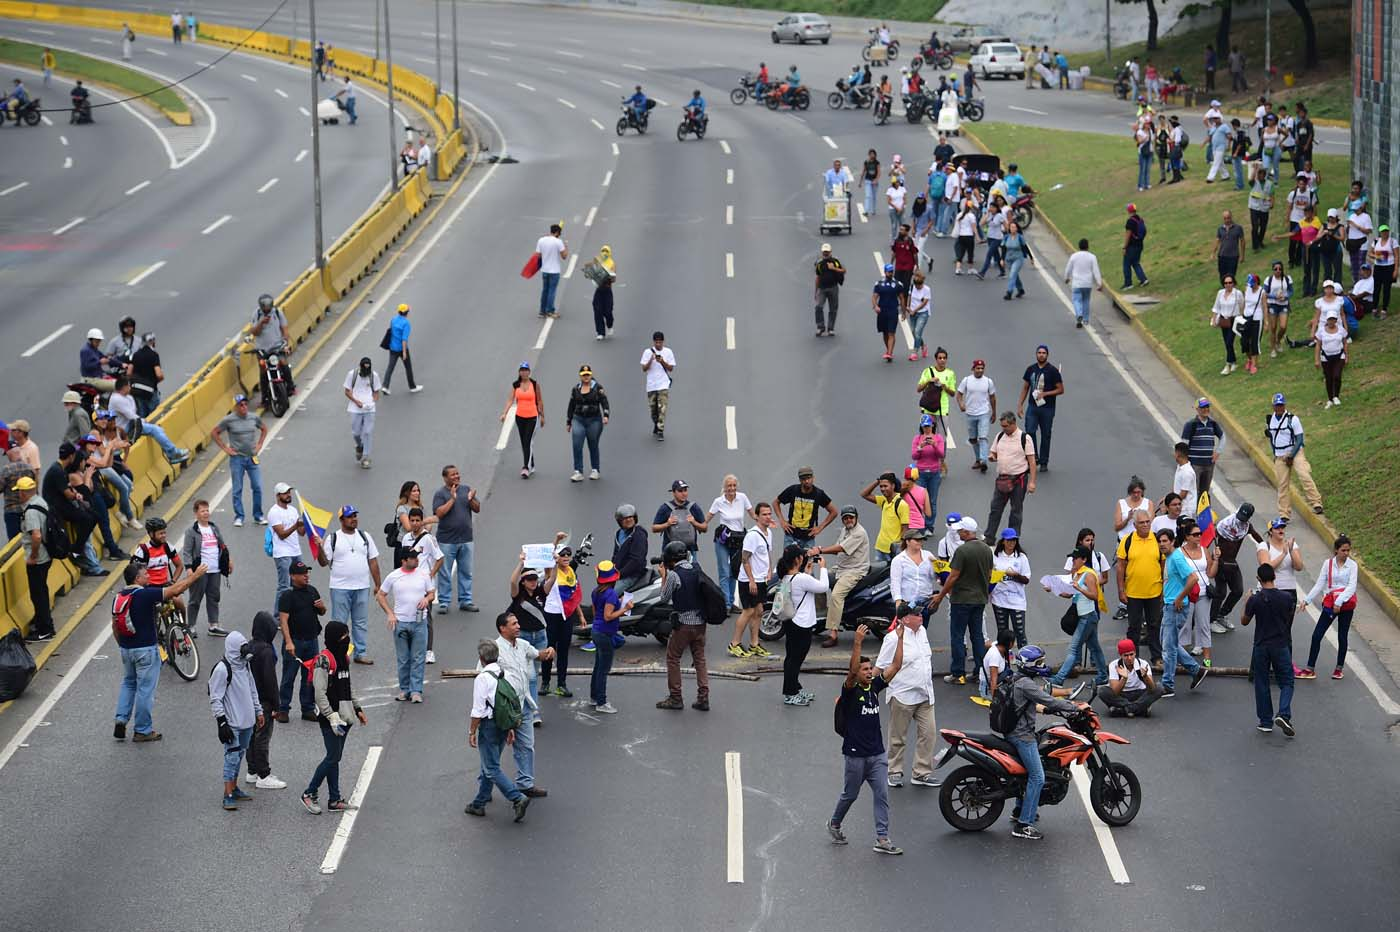 Venezuelan opposition activists block the Francisco Fajardo motorway in Caracas, on April 24, 2017. Protesters plan Monday to block Venezuela's main roads including the capital's biggest motorway, triggering fears of further violence after three weeks of unrest left 21 people dead. / AFP PHOTO / RONALDO SCHEMIDT